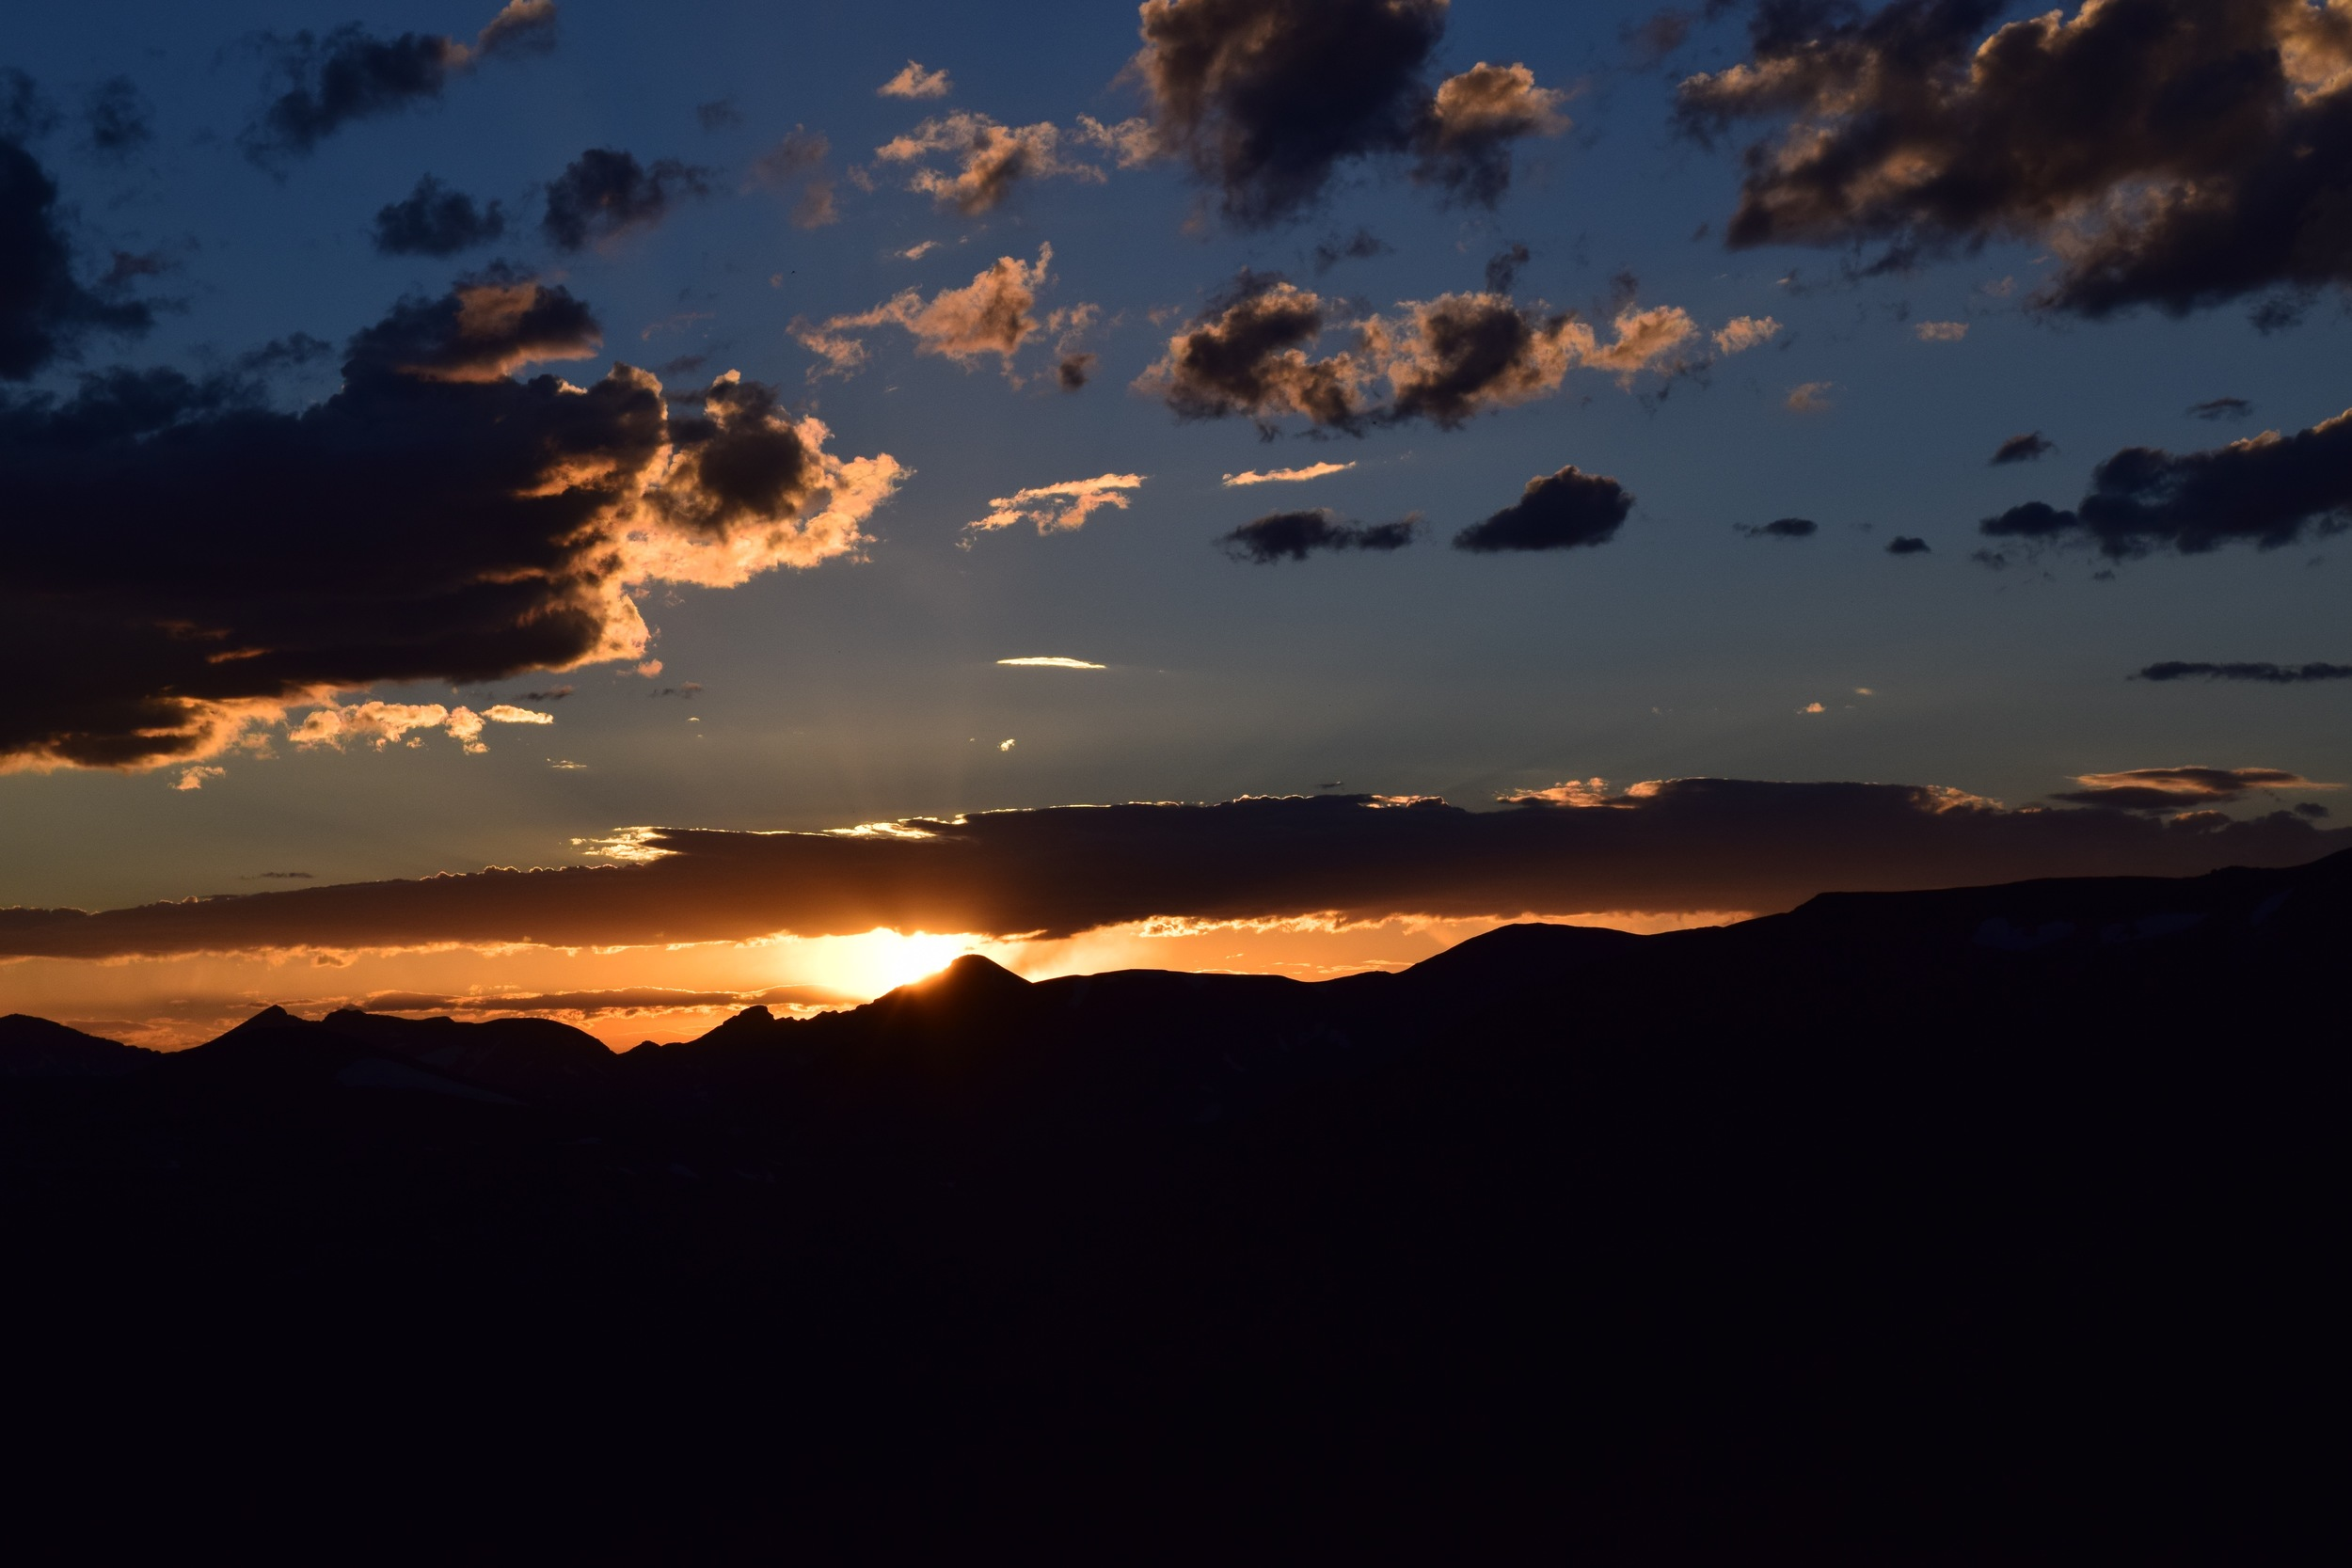 Sunset at Forest Canyon Overlook - taken the first weekend we lived in Colorado